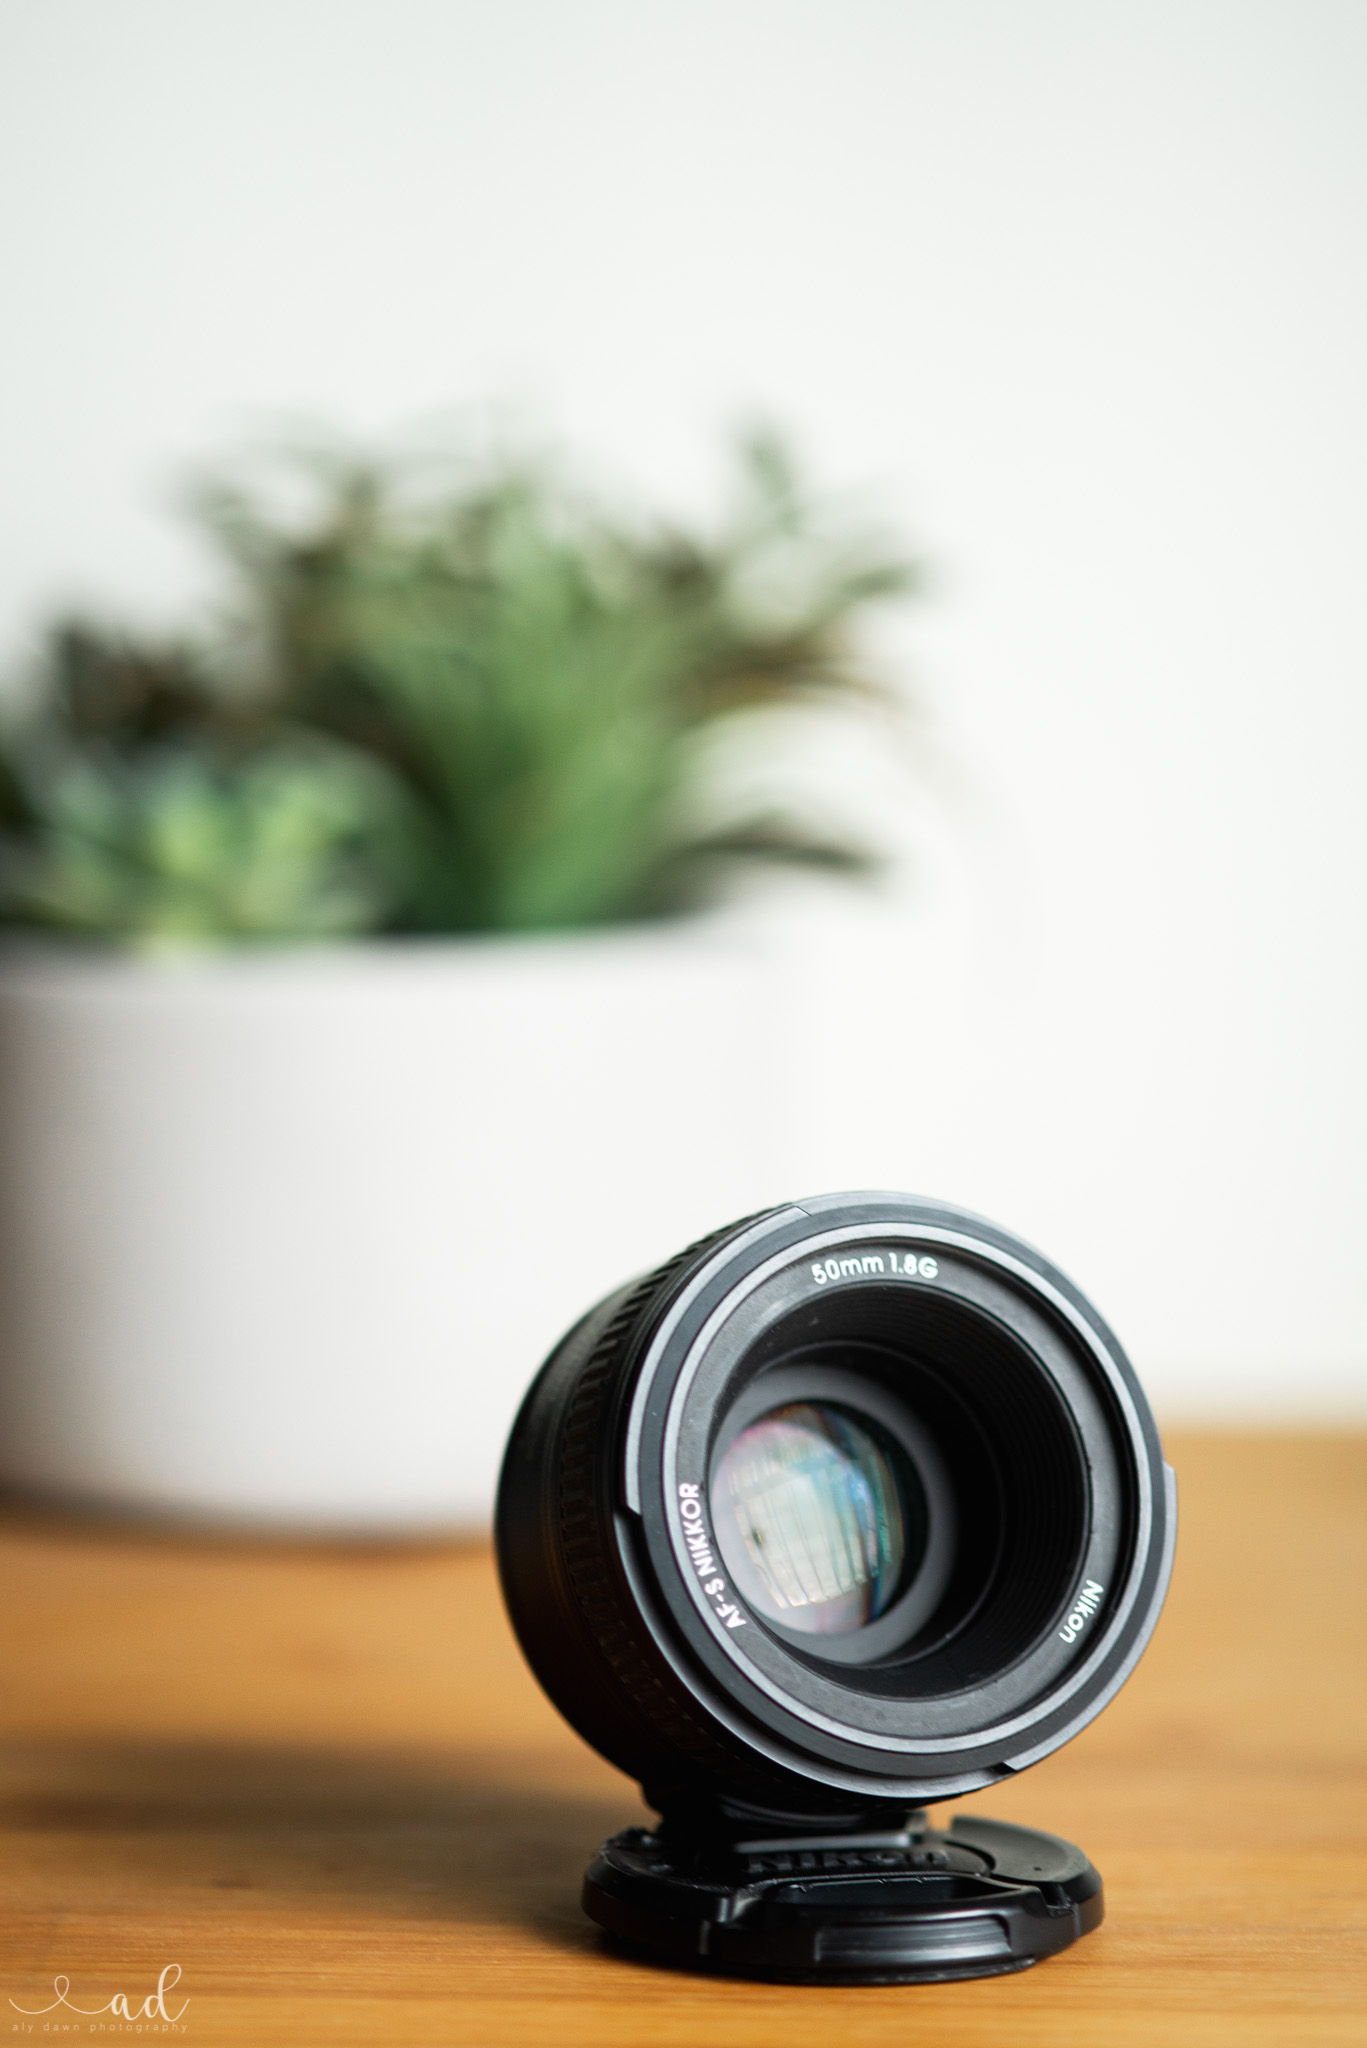 Nikon 50mm 1.8 Lens is a Great Lens to Buy